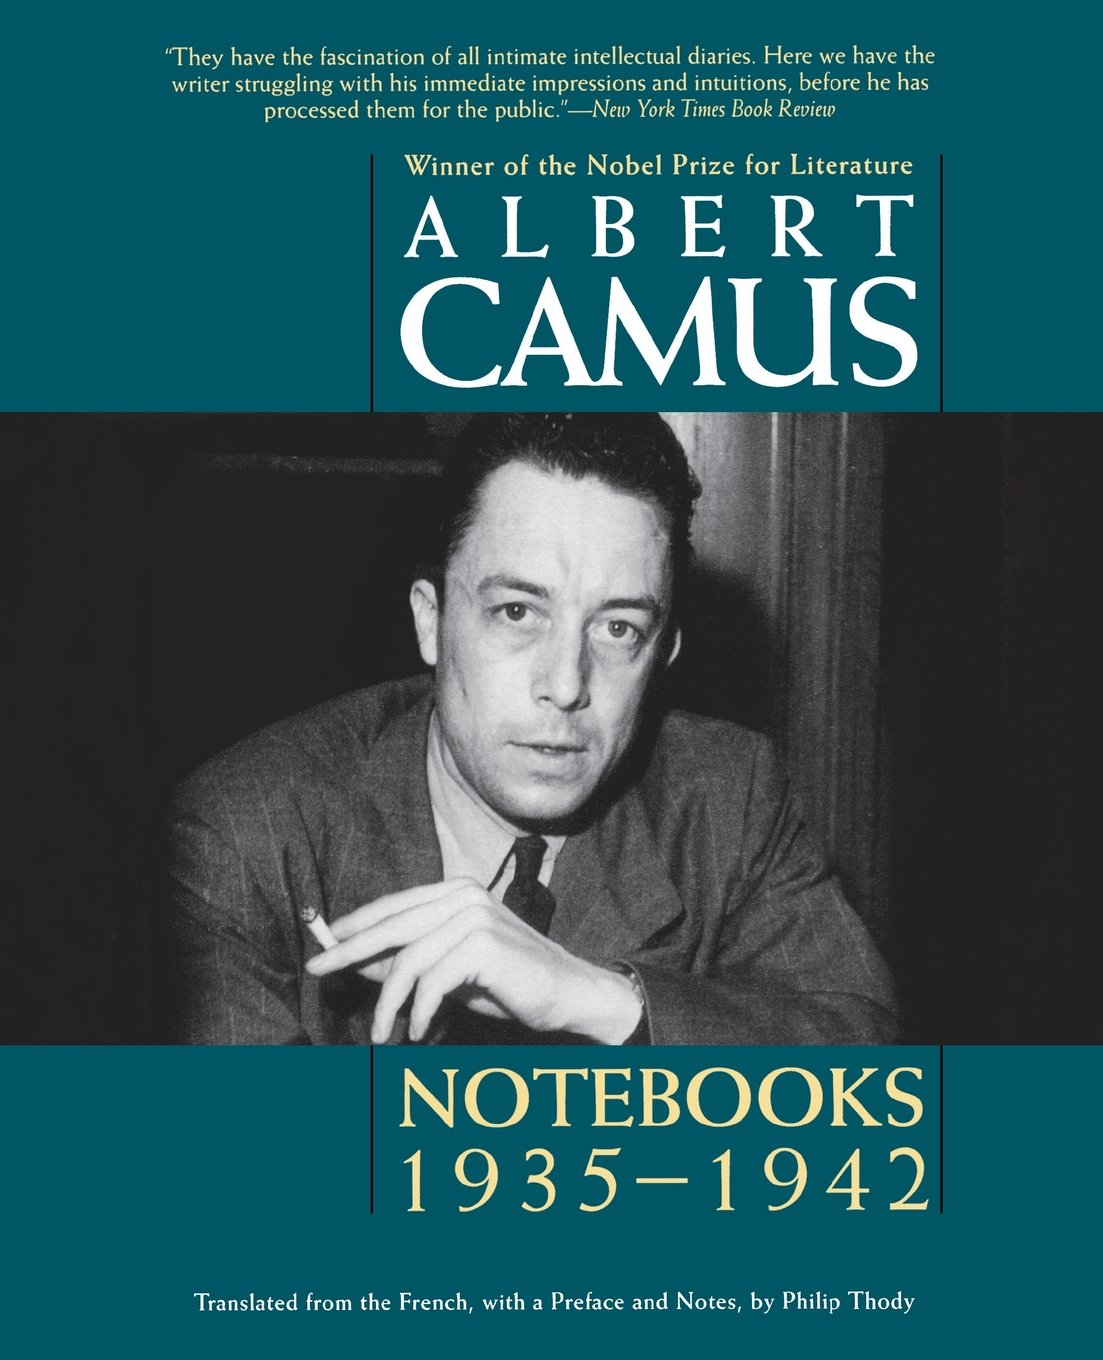 com notebooks 1935 1942 volume 1 9781566638722  com notebooks 1935 1942 volume 1 9781566638722 albert camus philip thody books